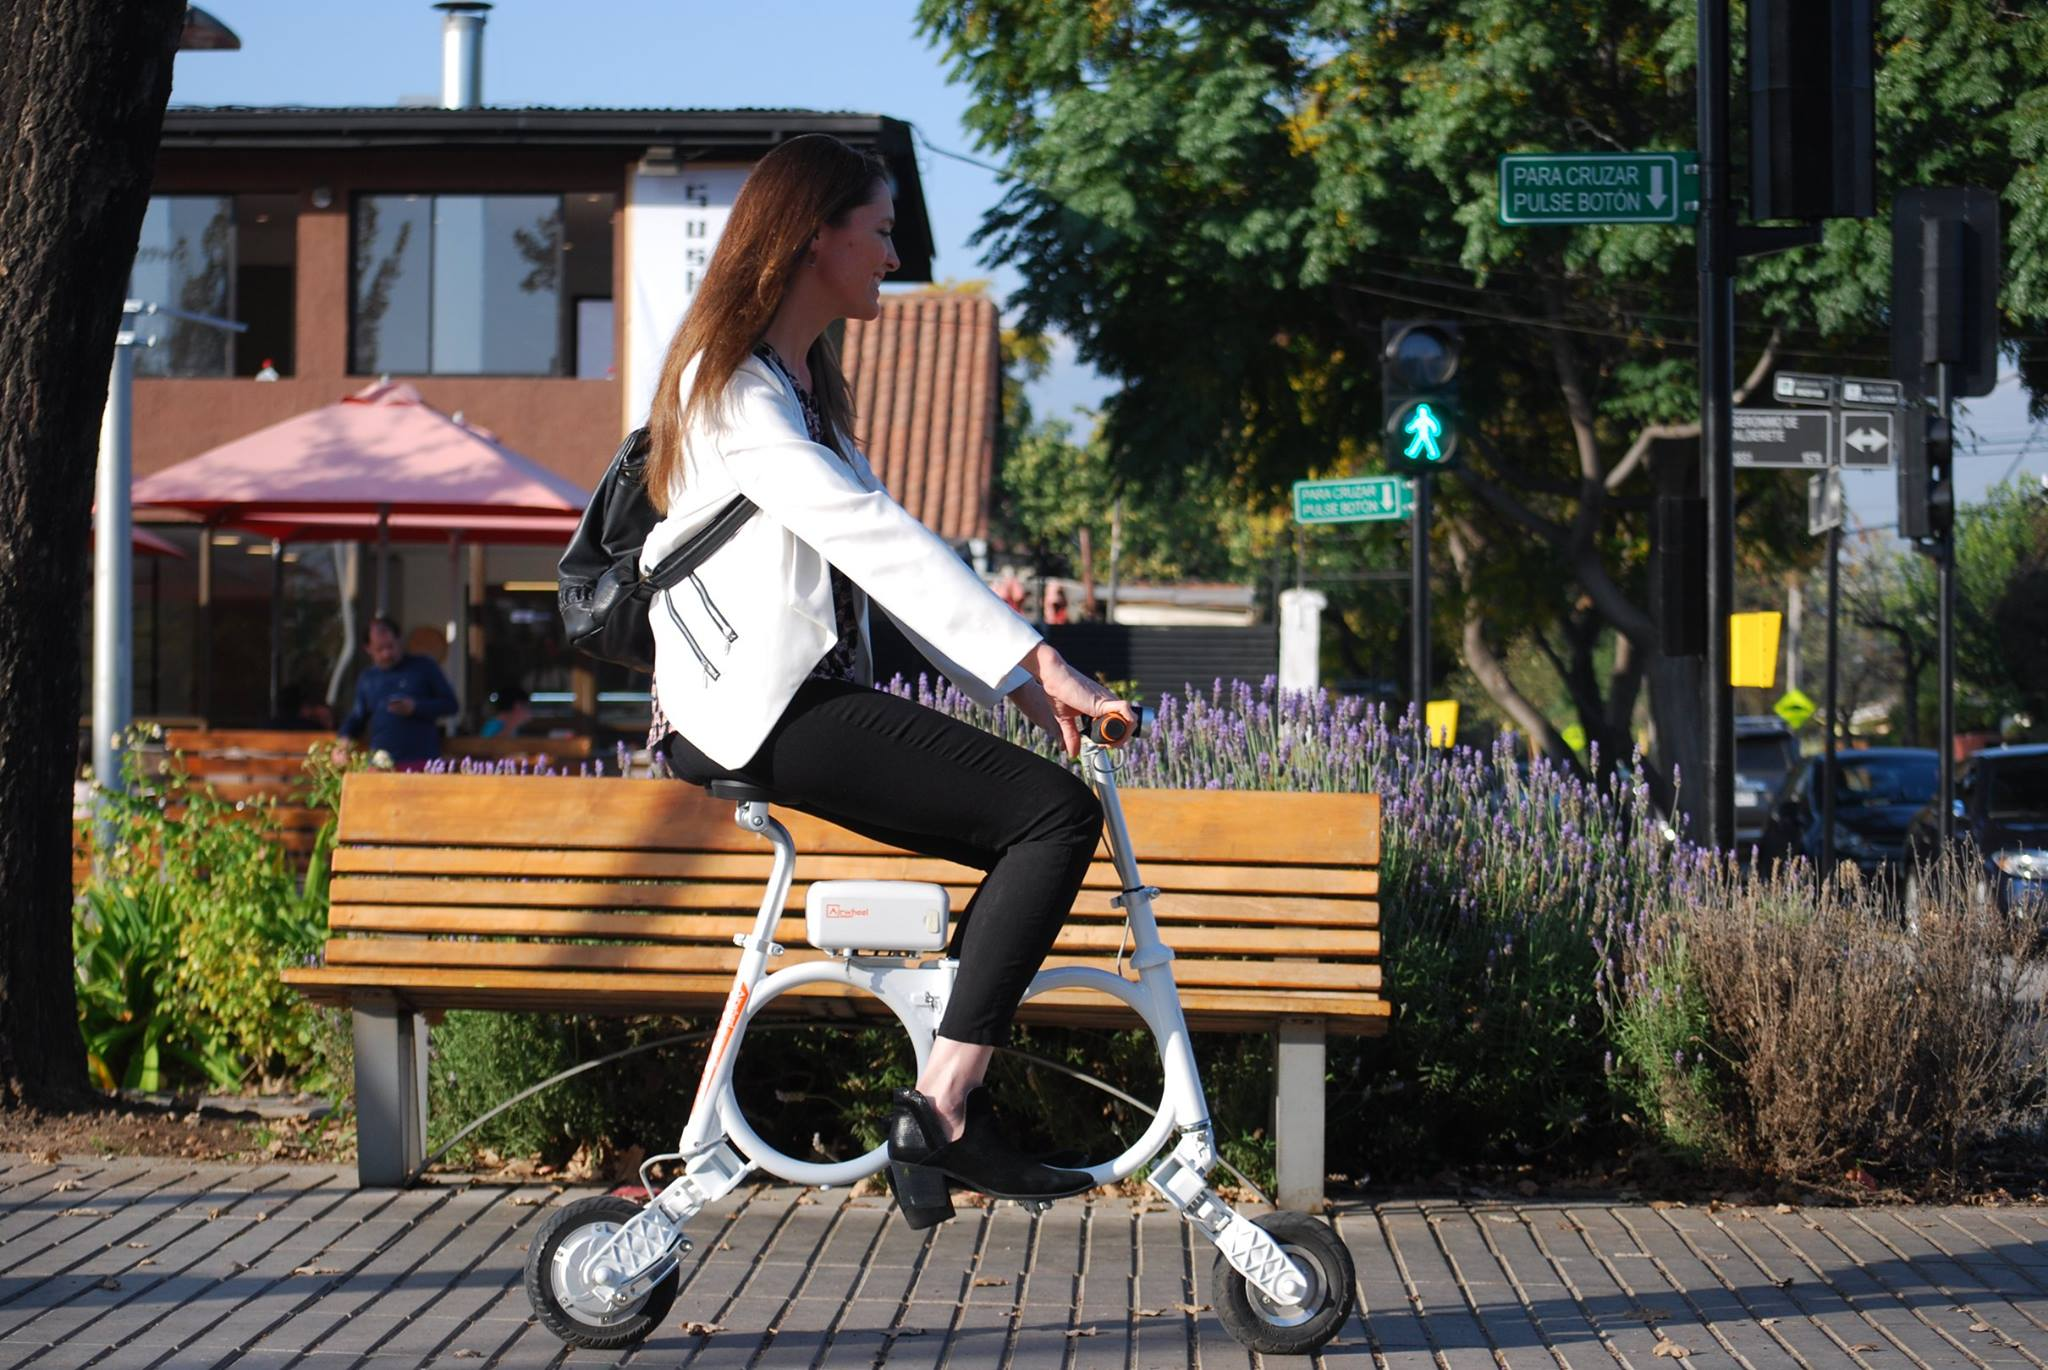 Airwheel-E3-backpack-electric-bike